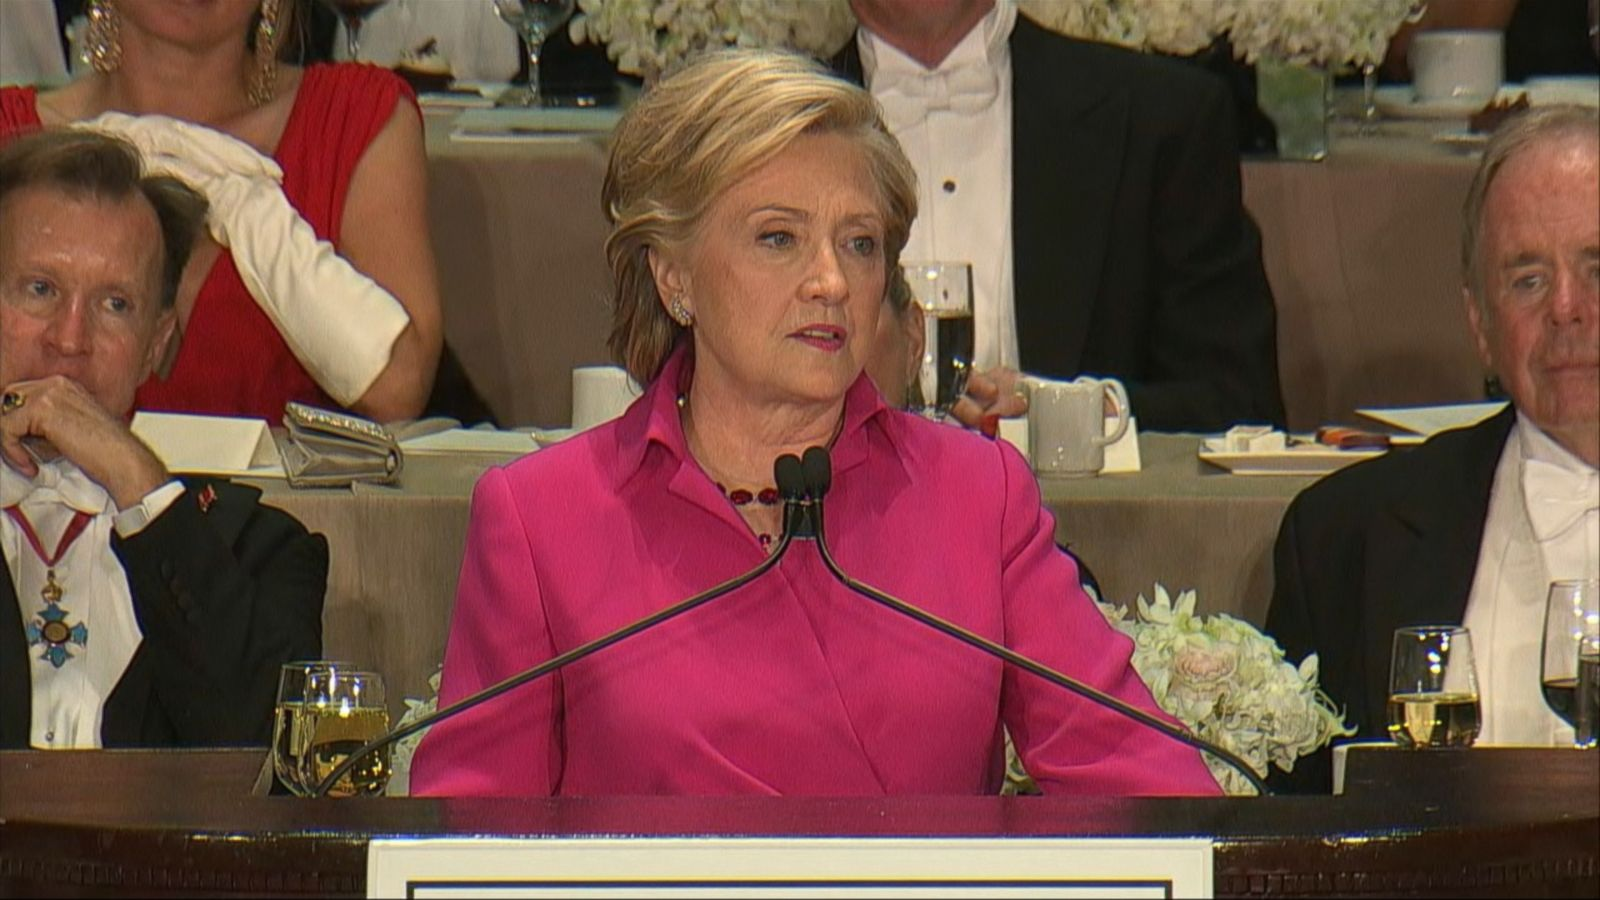 VIDEO: Even though Clinton and Trump seemed displeased at times with some of the remarks, the pair did shakes hands at the end of the dinner, which is hosted by the Archbishop of New York, Cardinal Timothy Dolan.